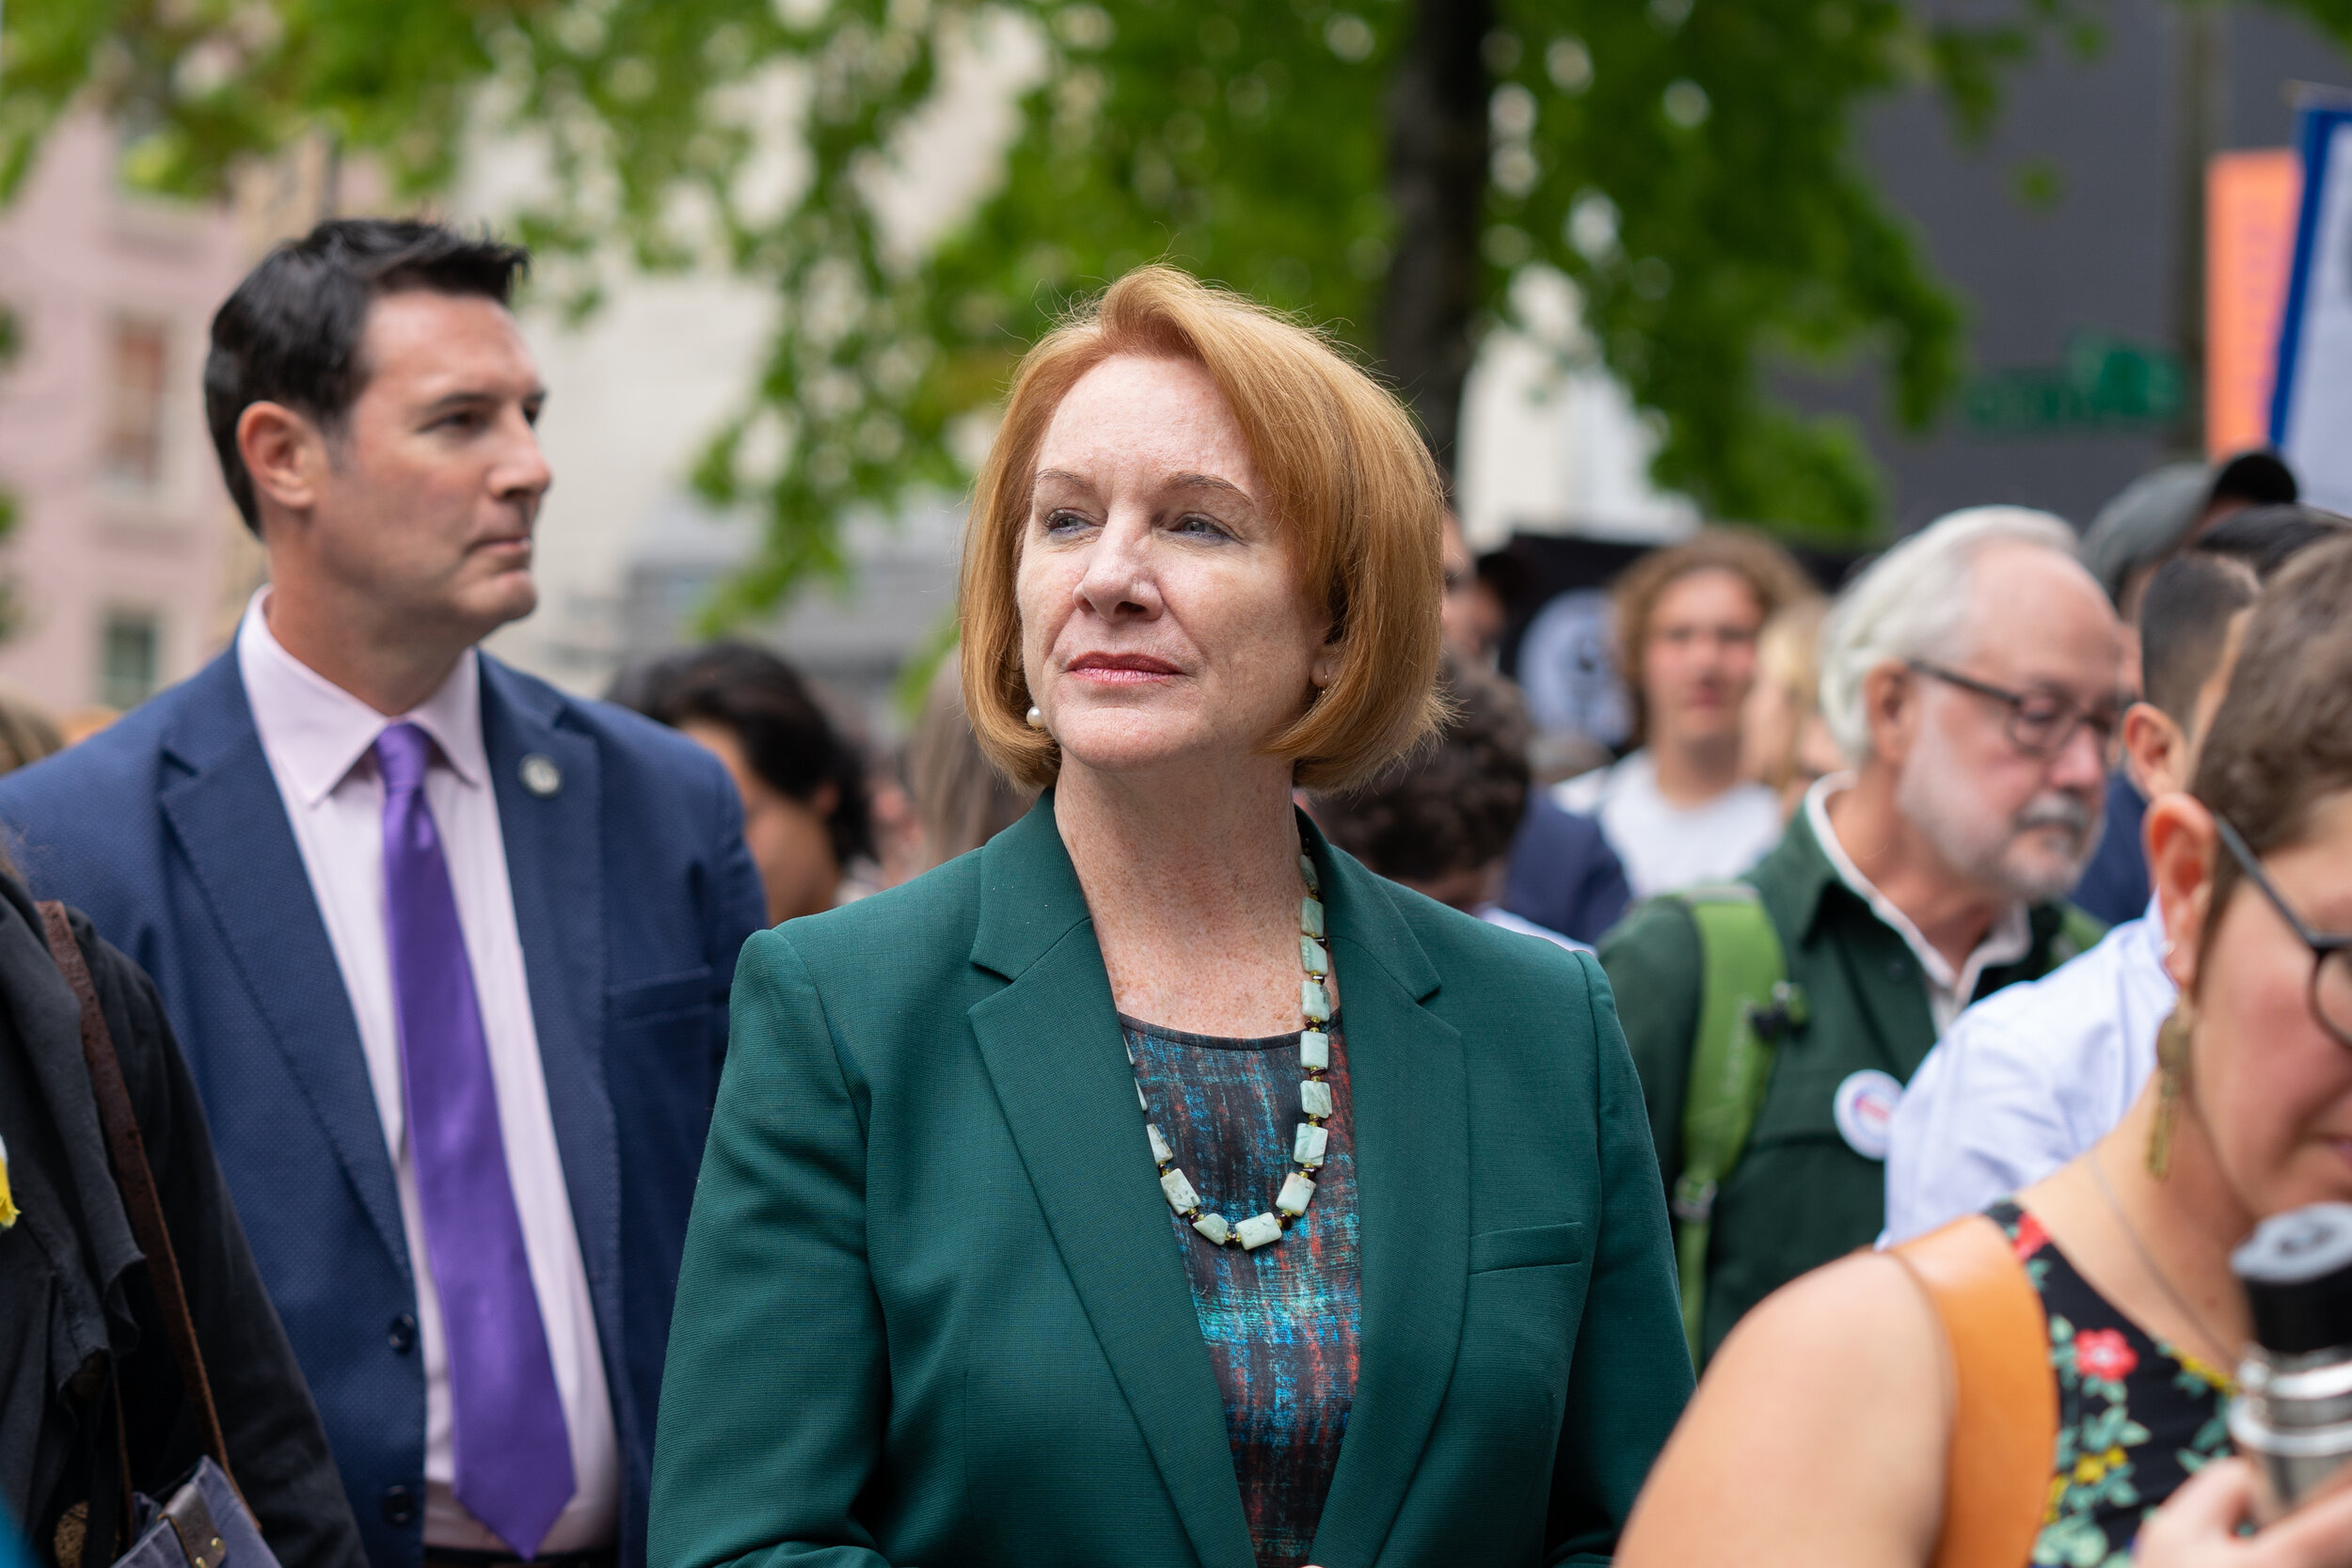 Seattle Mayor Jenny Durkan walks through the crowd at City Hall during the Global Climate Strike in Seattle, Washington, U.S., on Friday, Sept. 20, 2019. (Bloomberg)